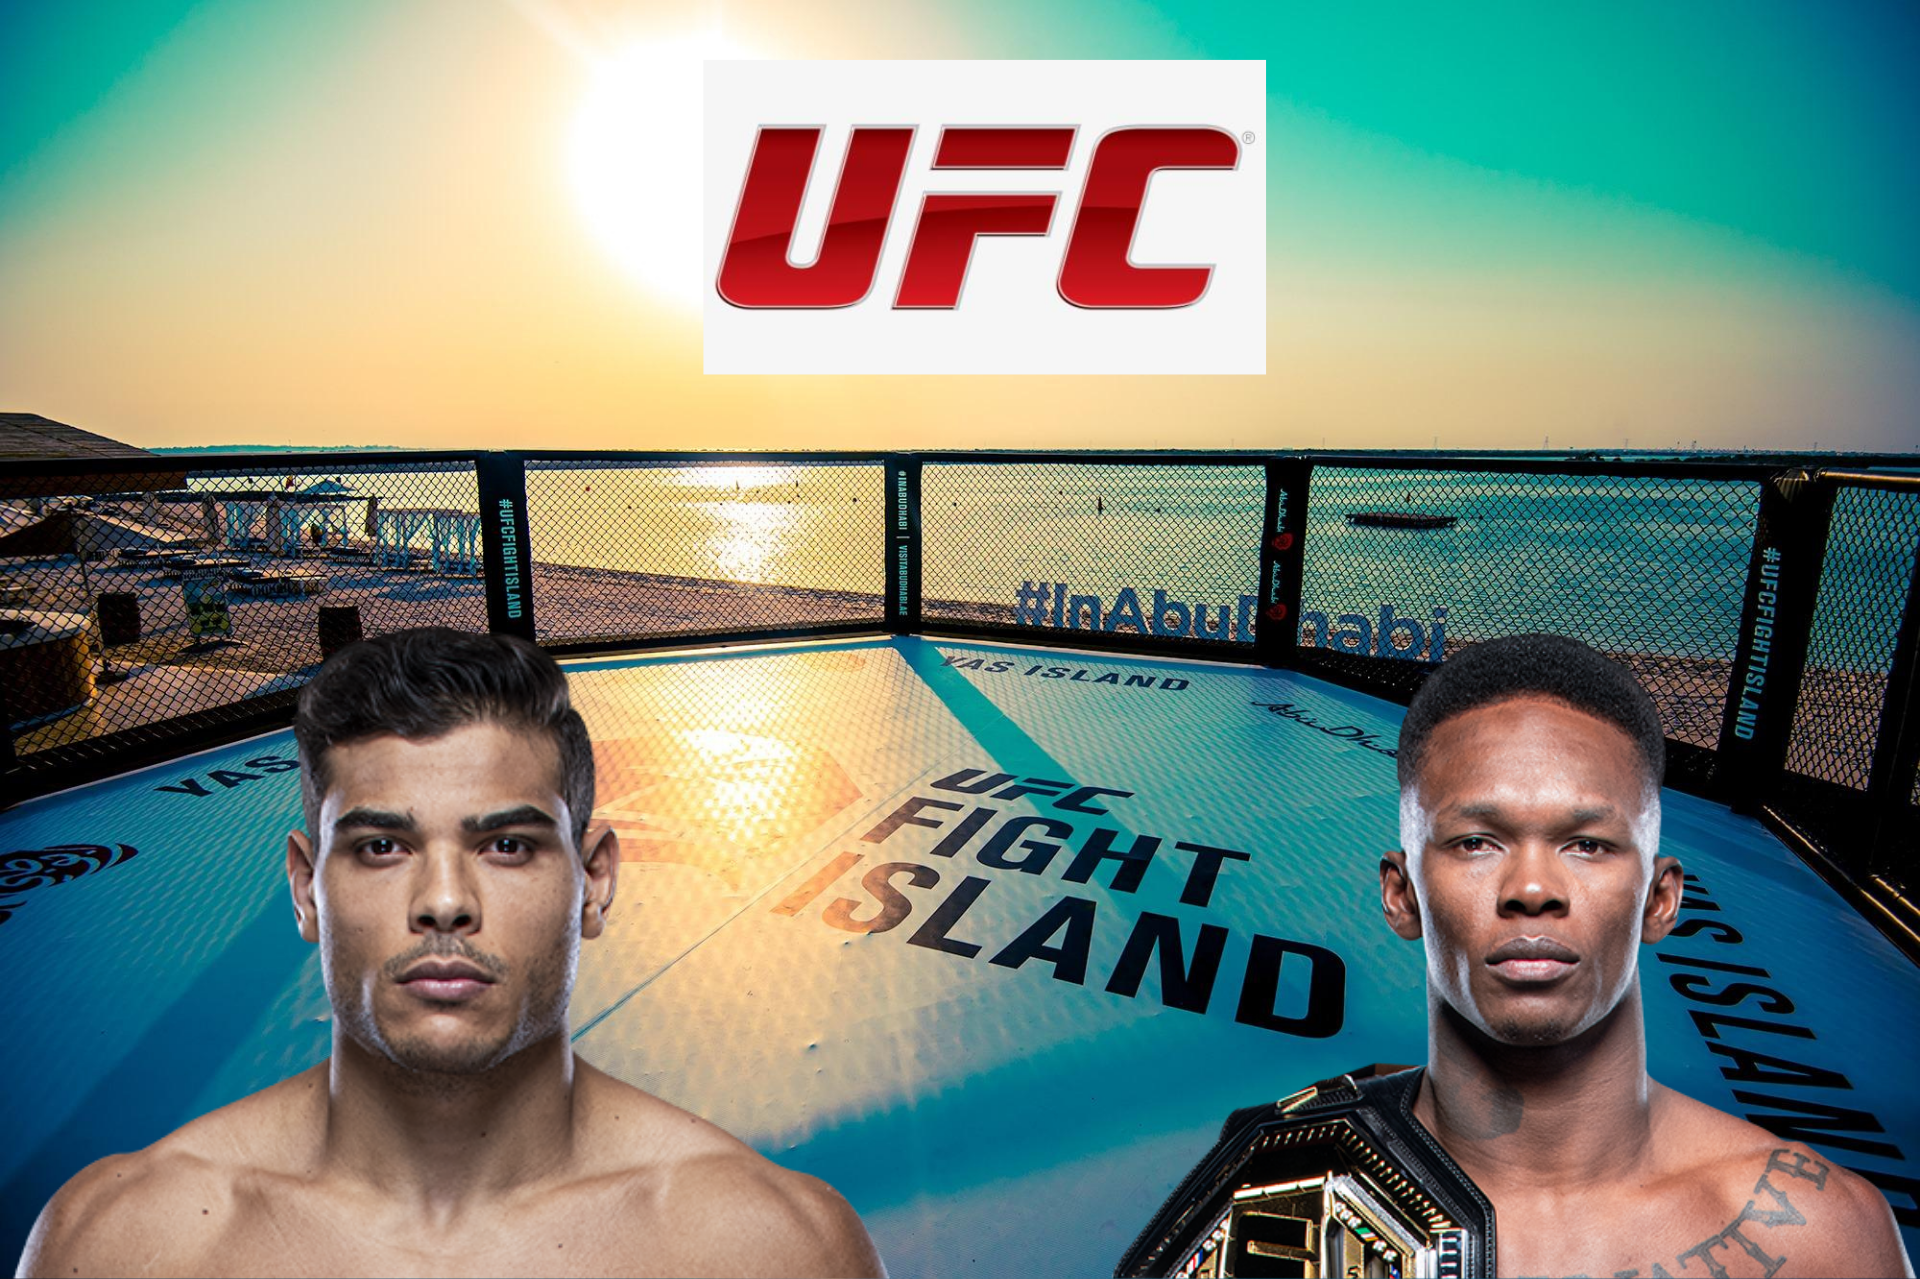 UFC 253 featuring Adesanya and Costa to take place at Fight Island - UFC 253